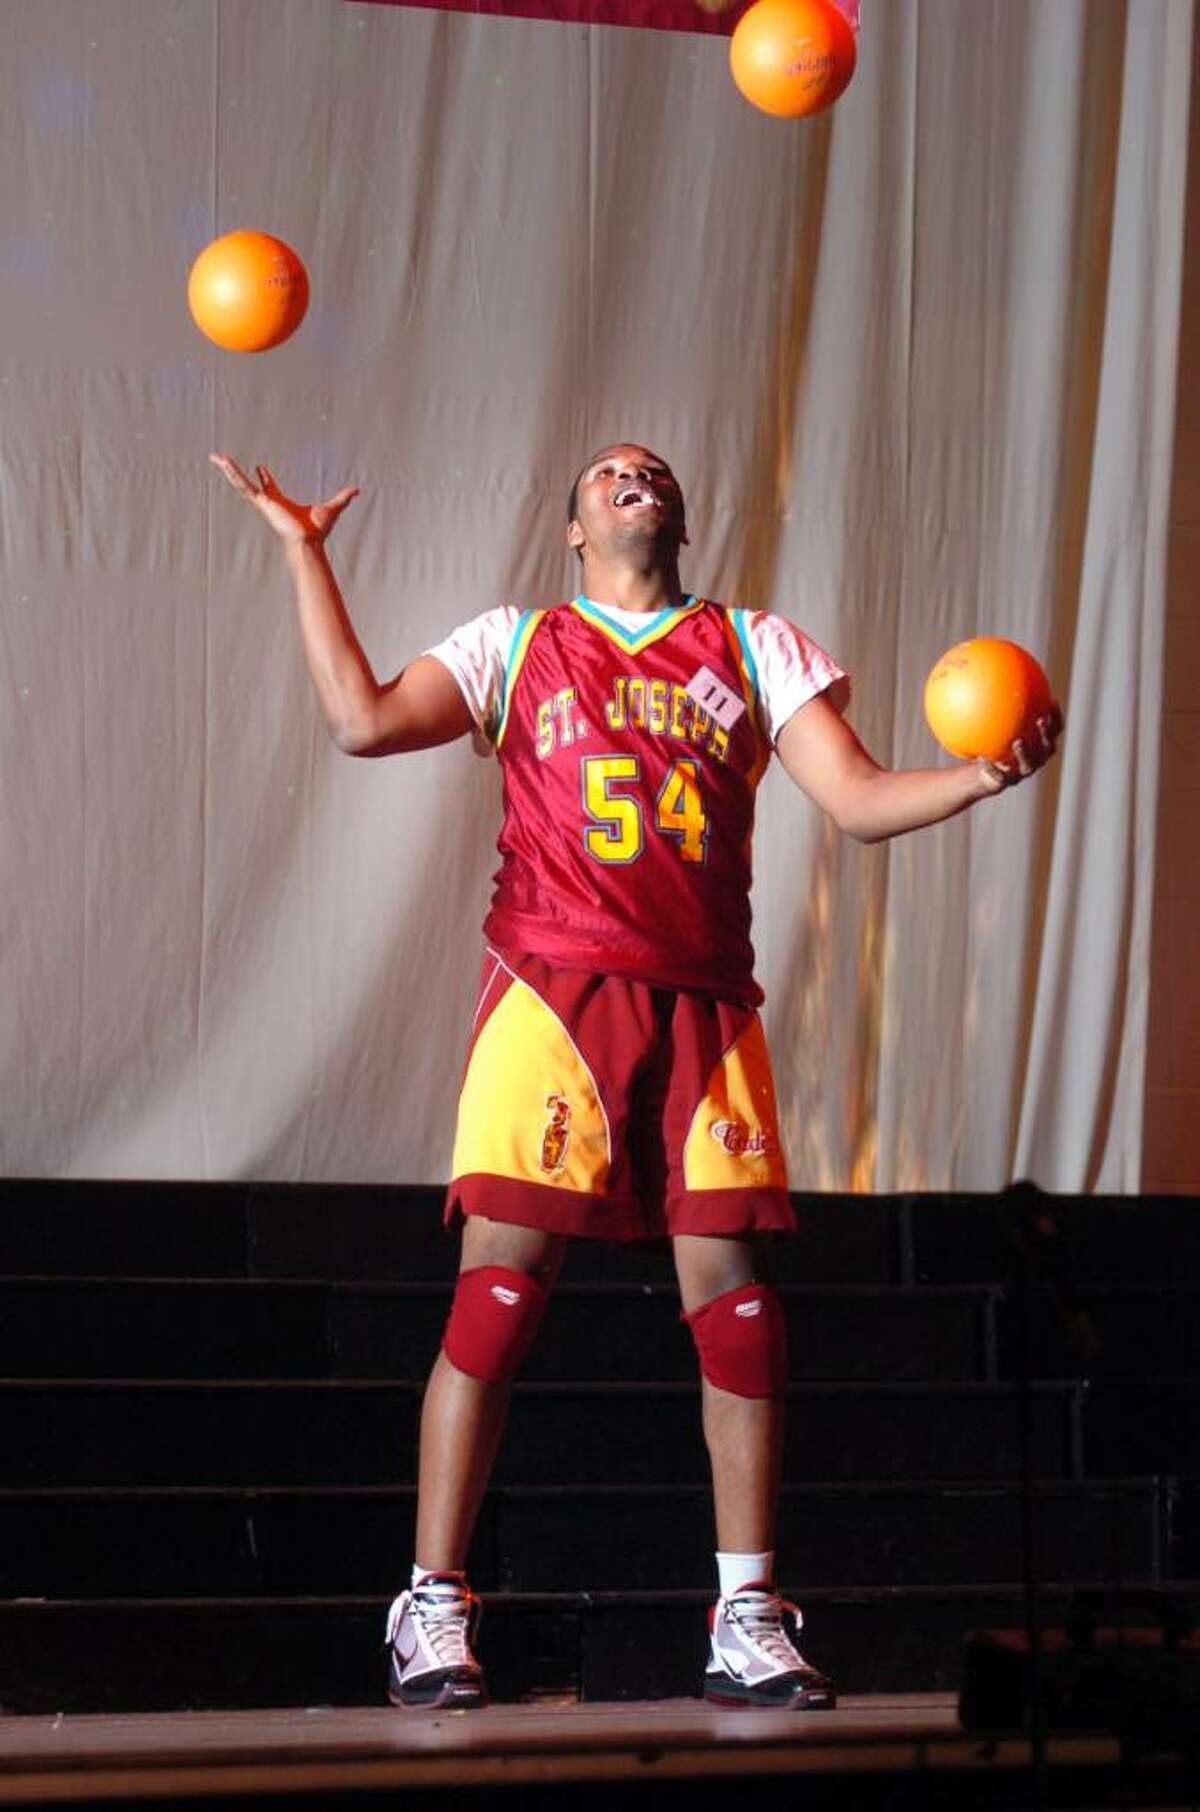 Greg Langston shows off his juggling talent at St. Joseph's fourth annual Mr. Student Body Competition Thursday Mar. 18, 2010 at the school in Trumbull. Proceeds benefit the Center for Women and Families of Bridgeport and their White Ribbon Campaign, in which men and boys oppose violence against women.